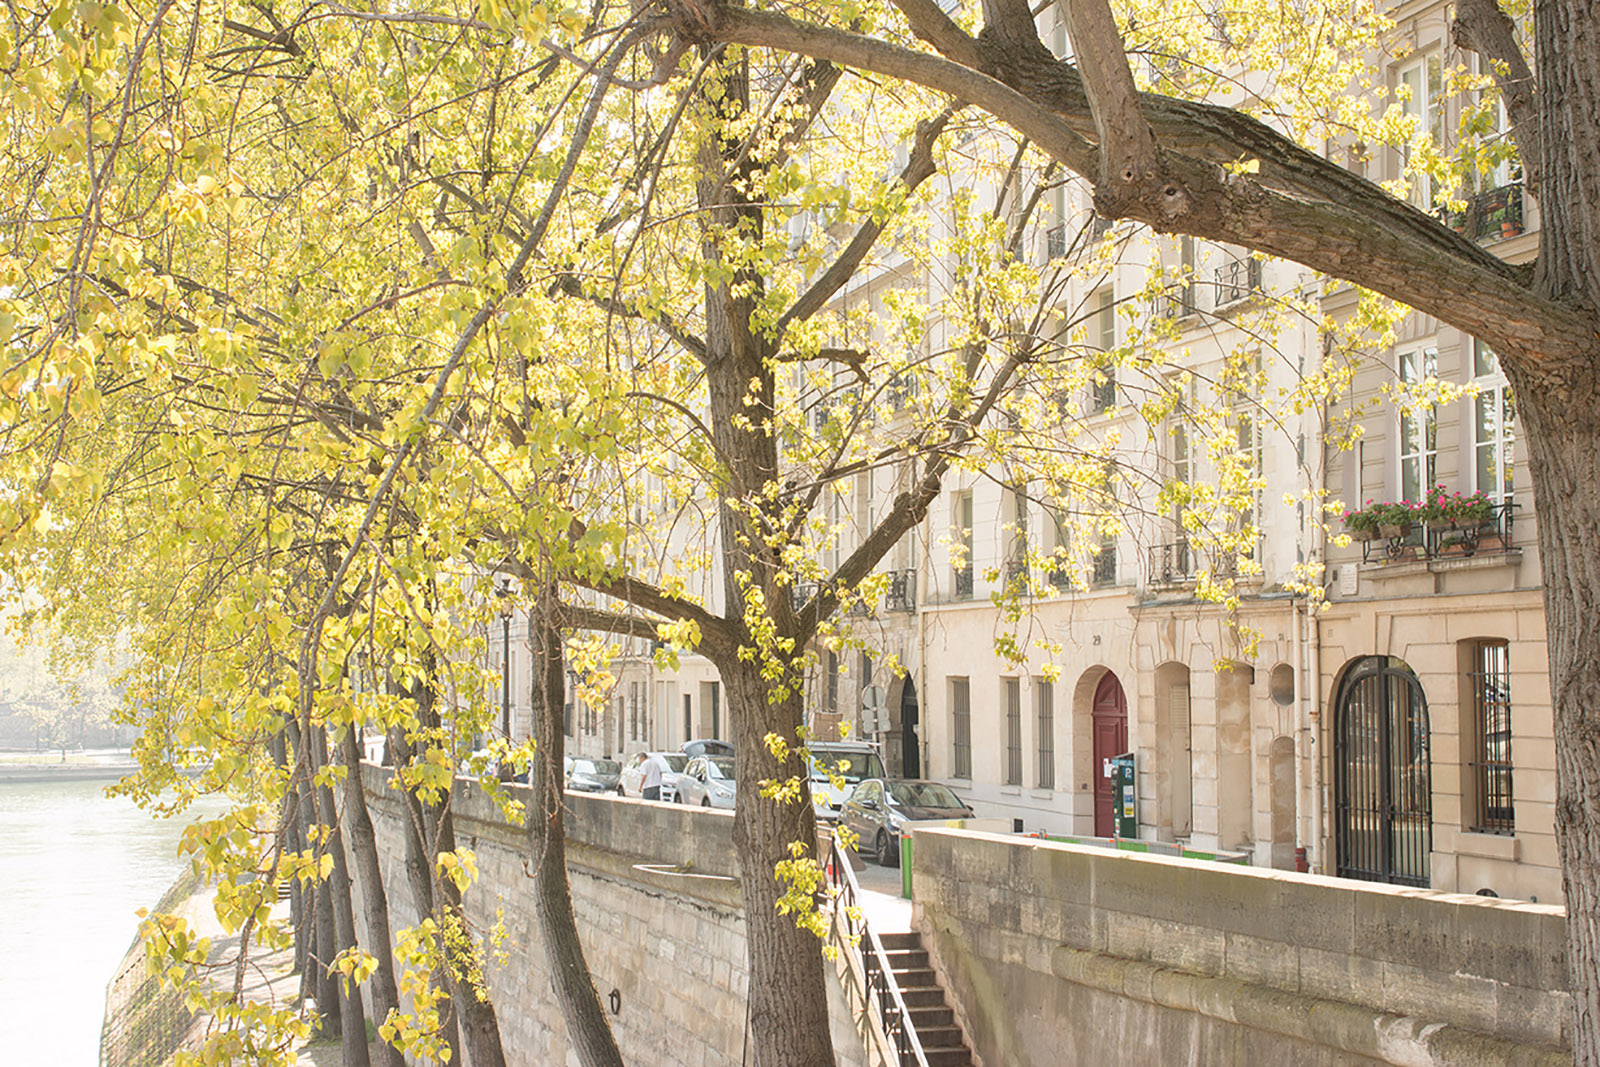 Spring in Paris by the Seine river